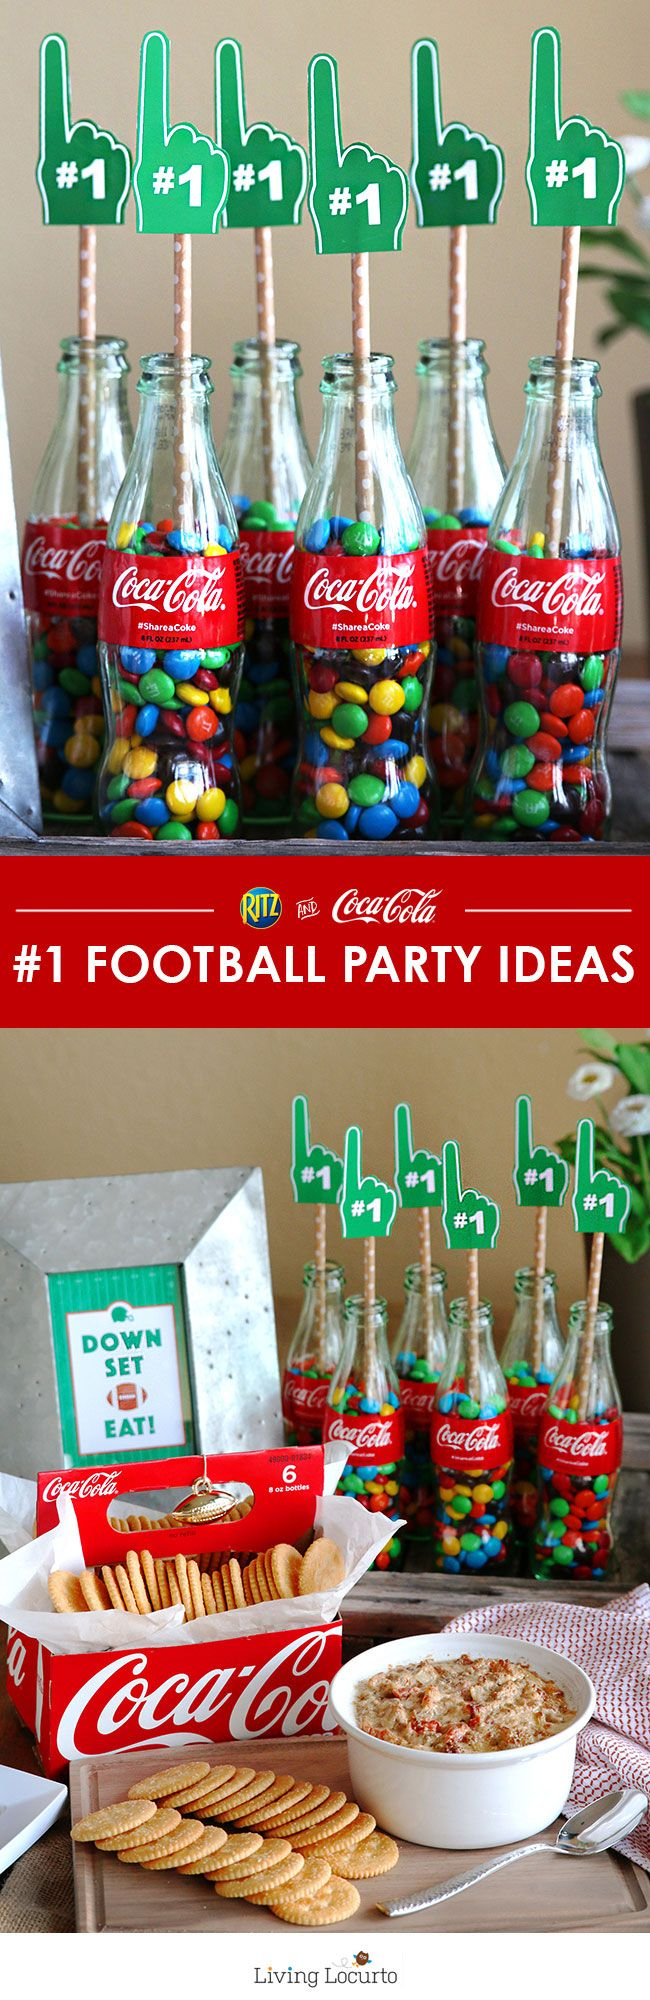 collection football decorations nest printable a decor by pin blissful tailgate package party